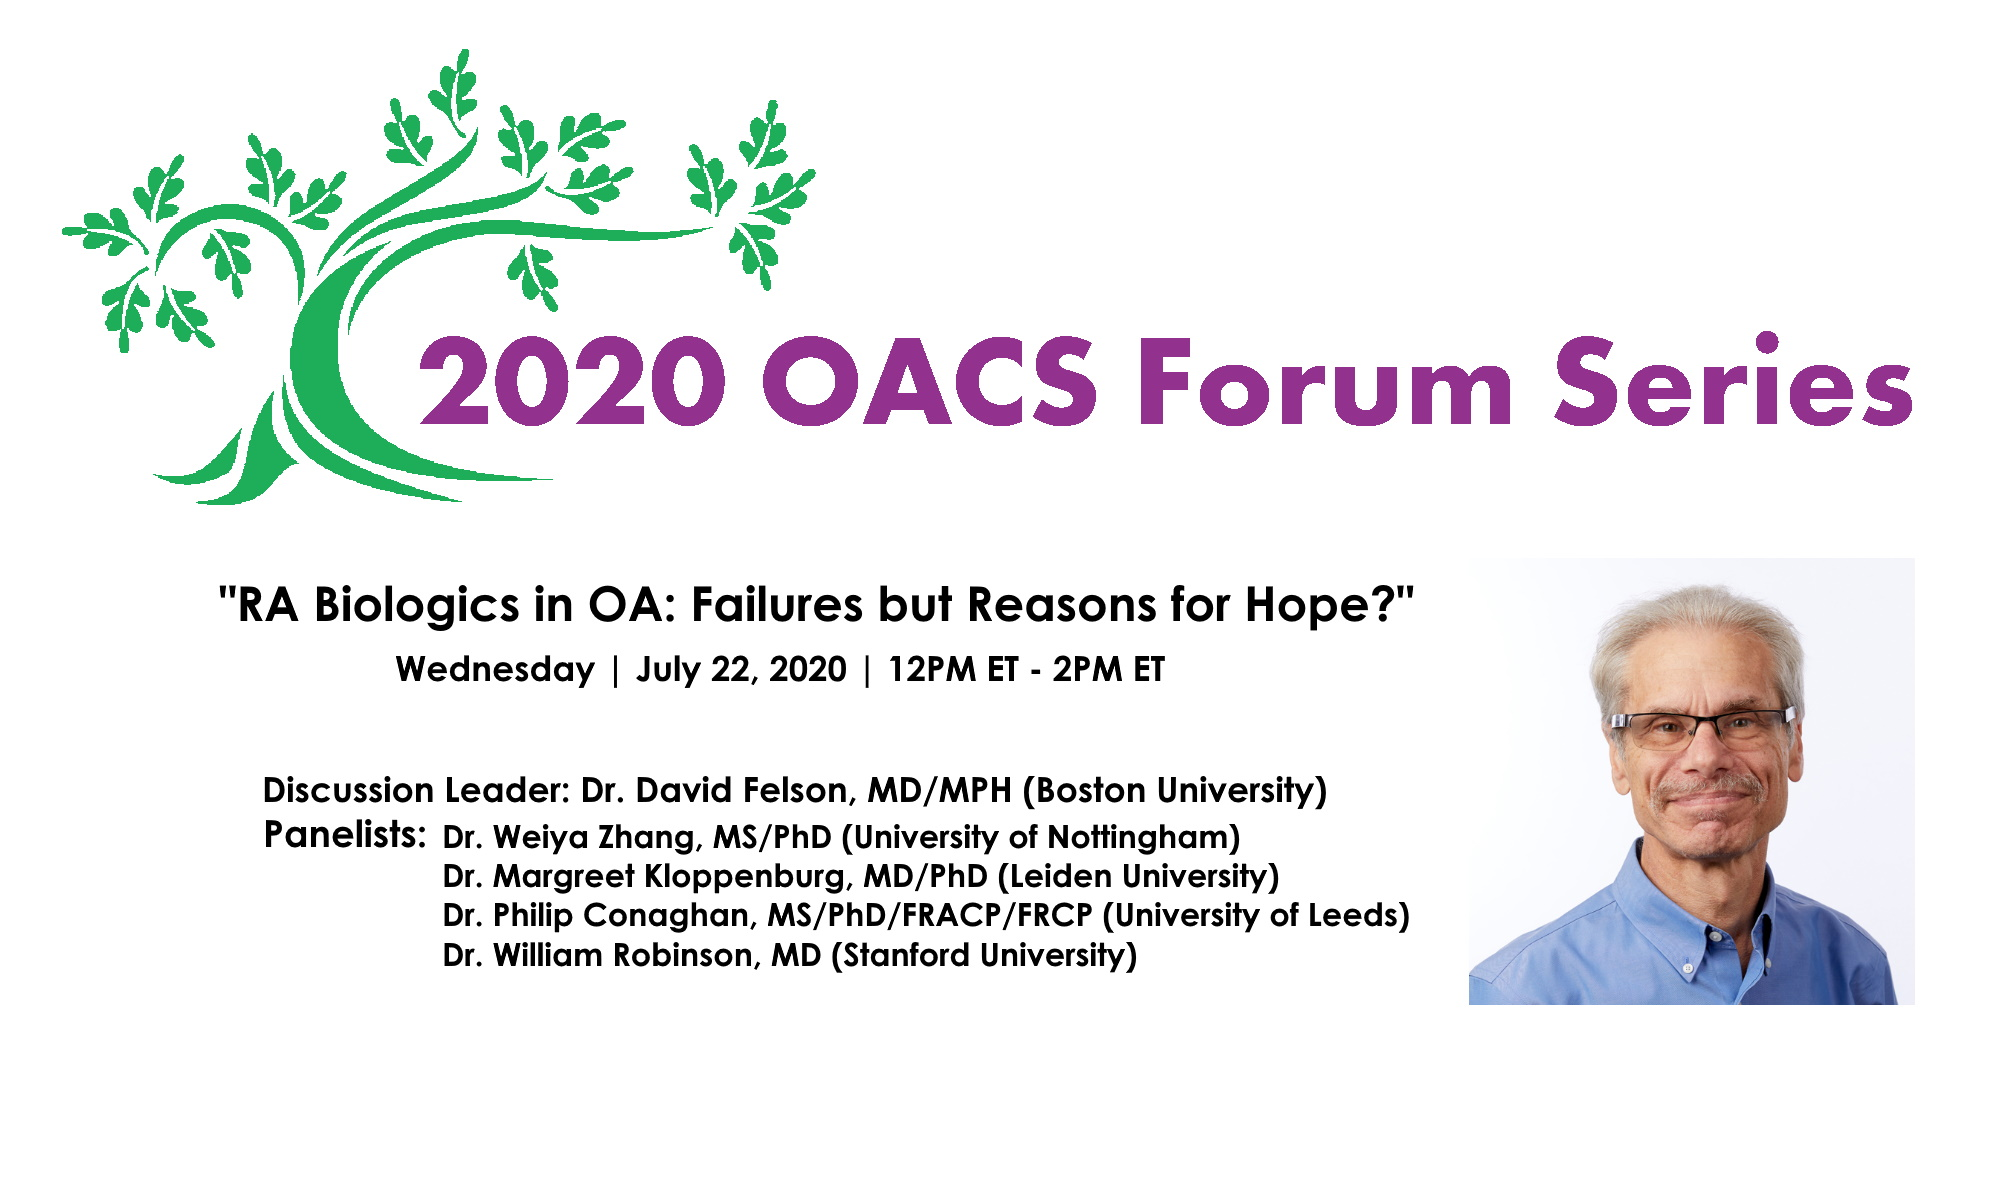 """""""RA BIOLOGICS IN OA: FAILURES BUT REASONS FOR HOPE?"""""""